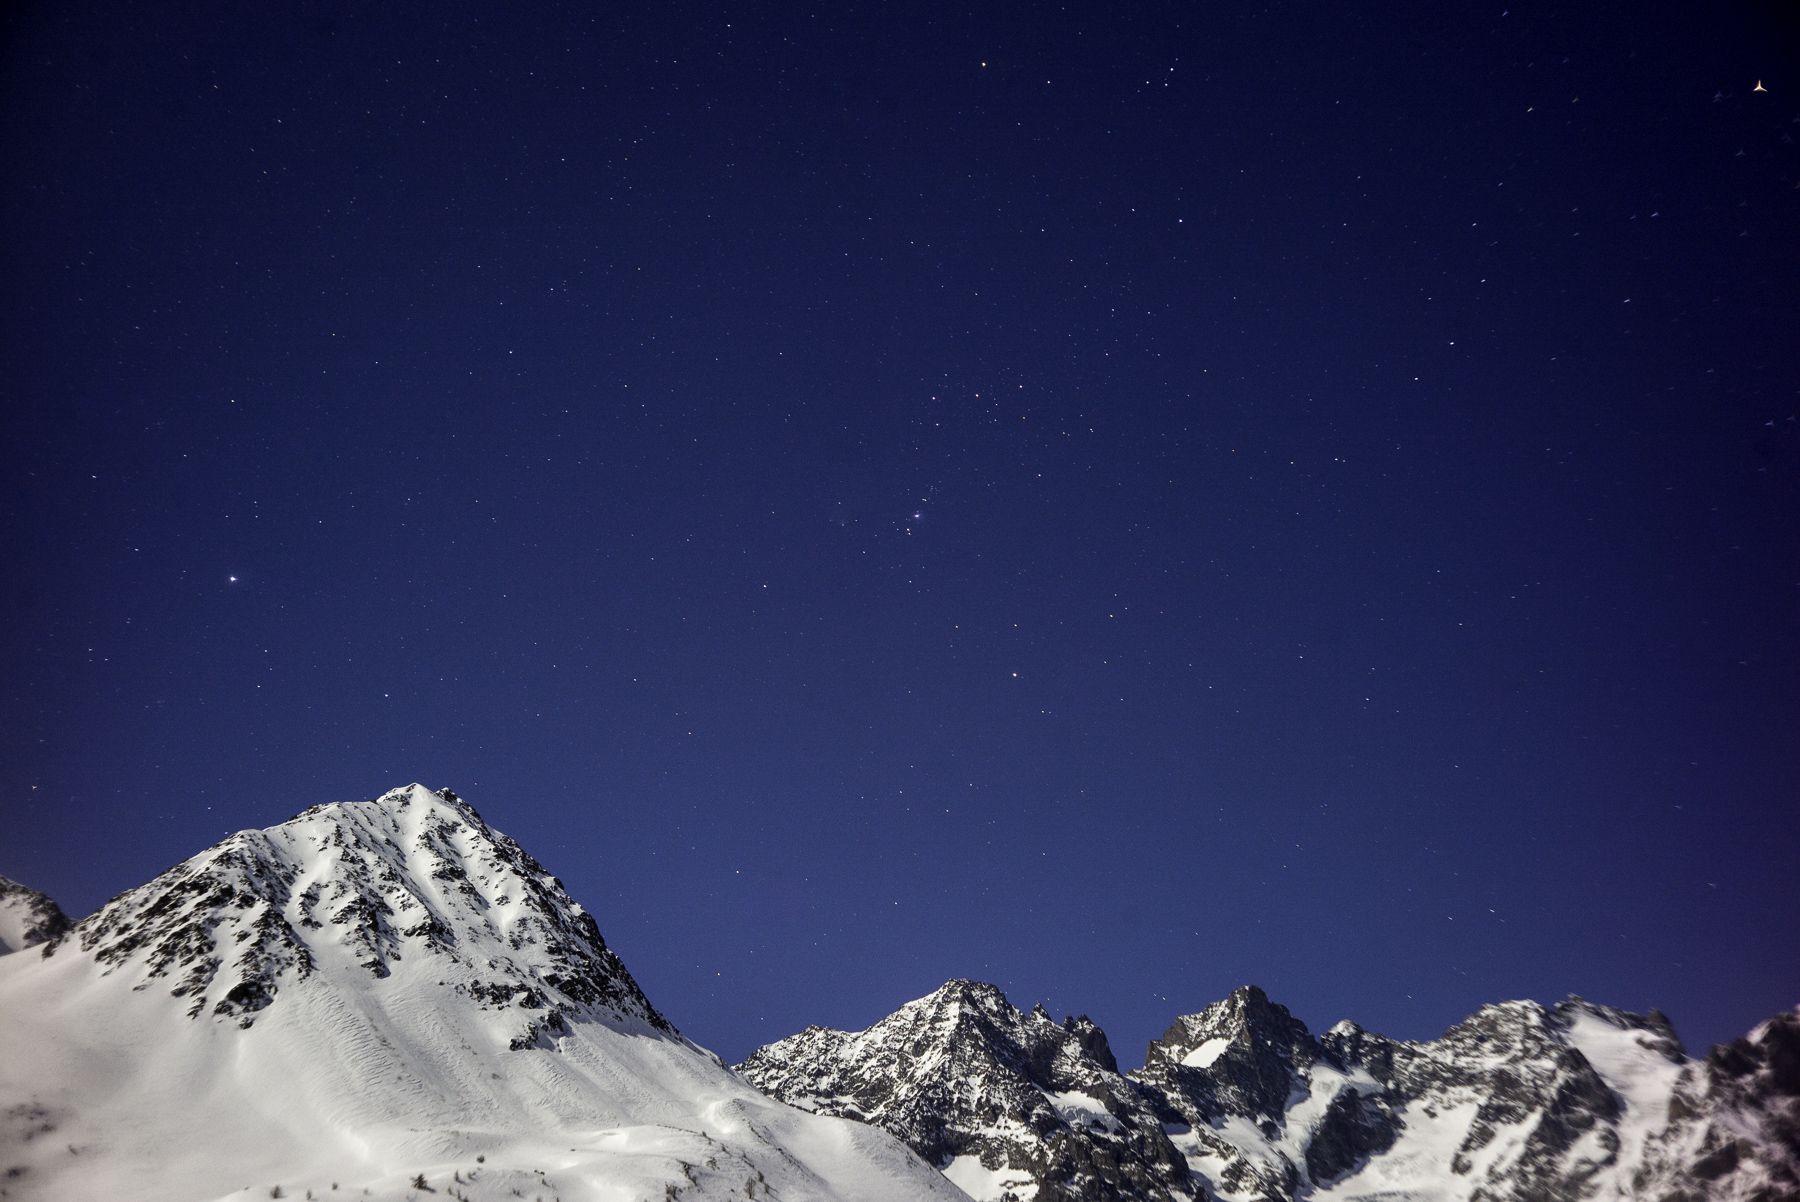 daniel-fine-photo-hyperfocale-640.jpg  snowmoon